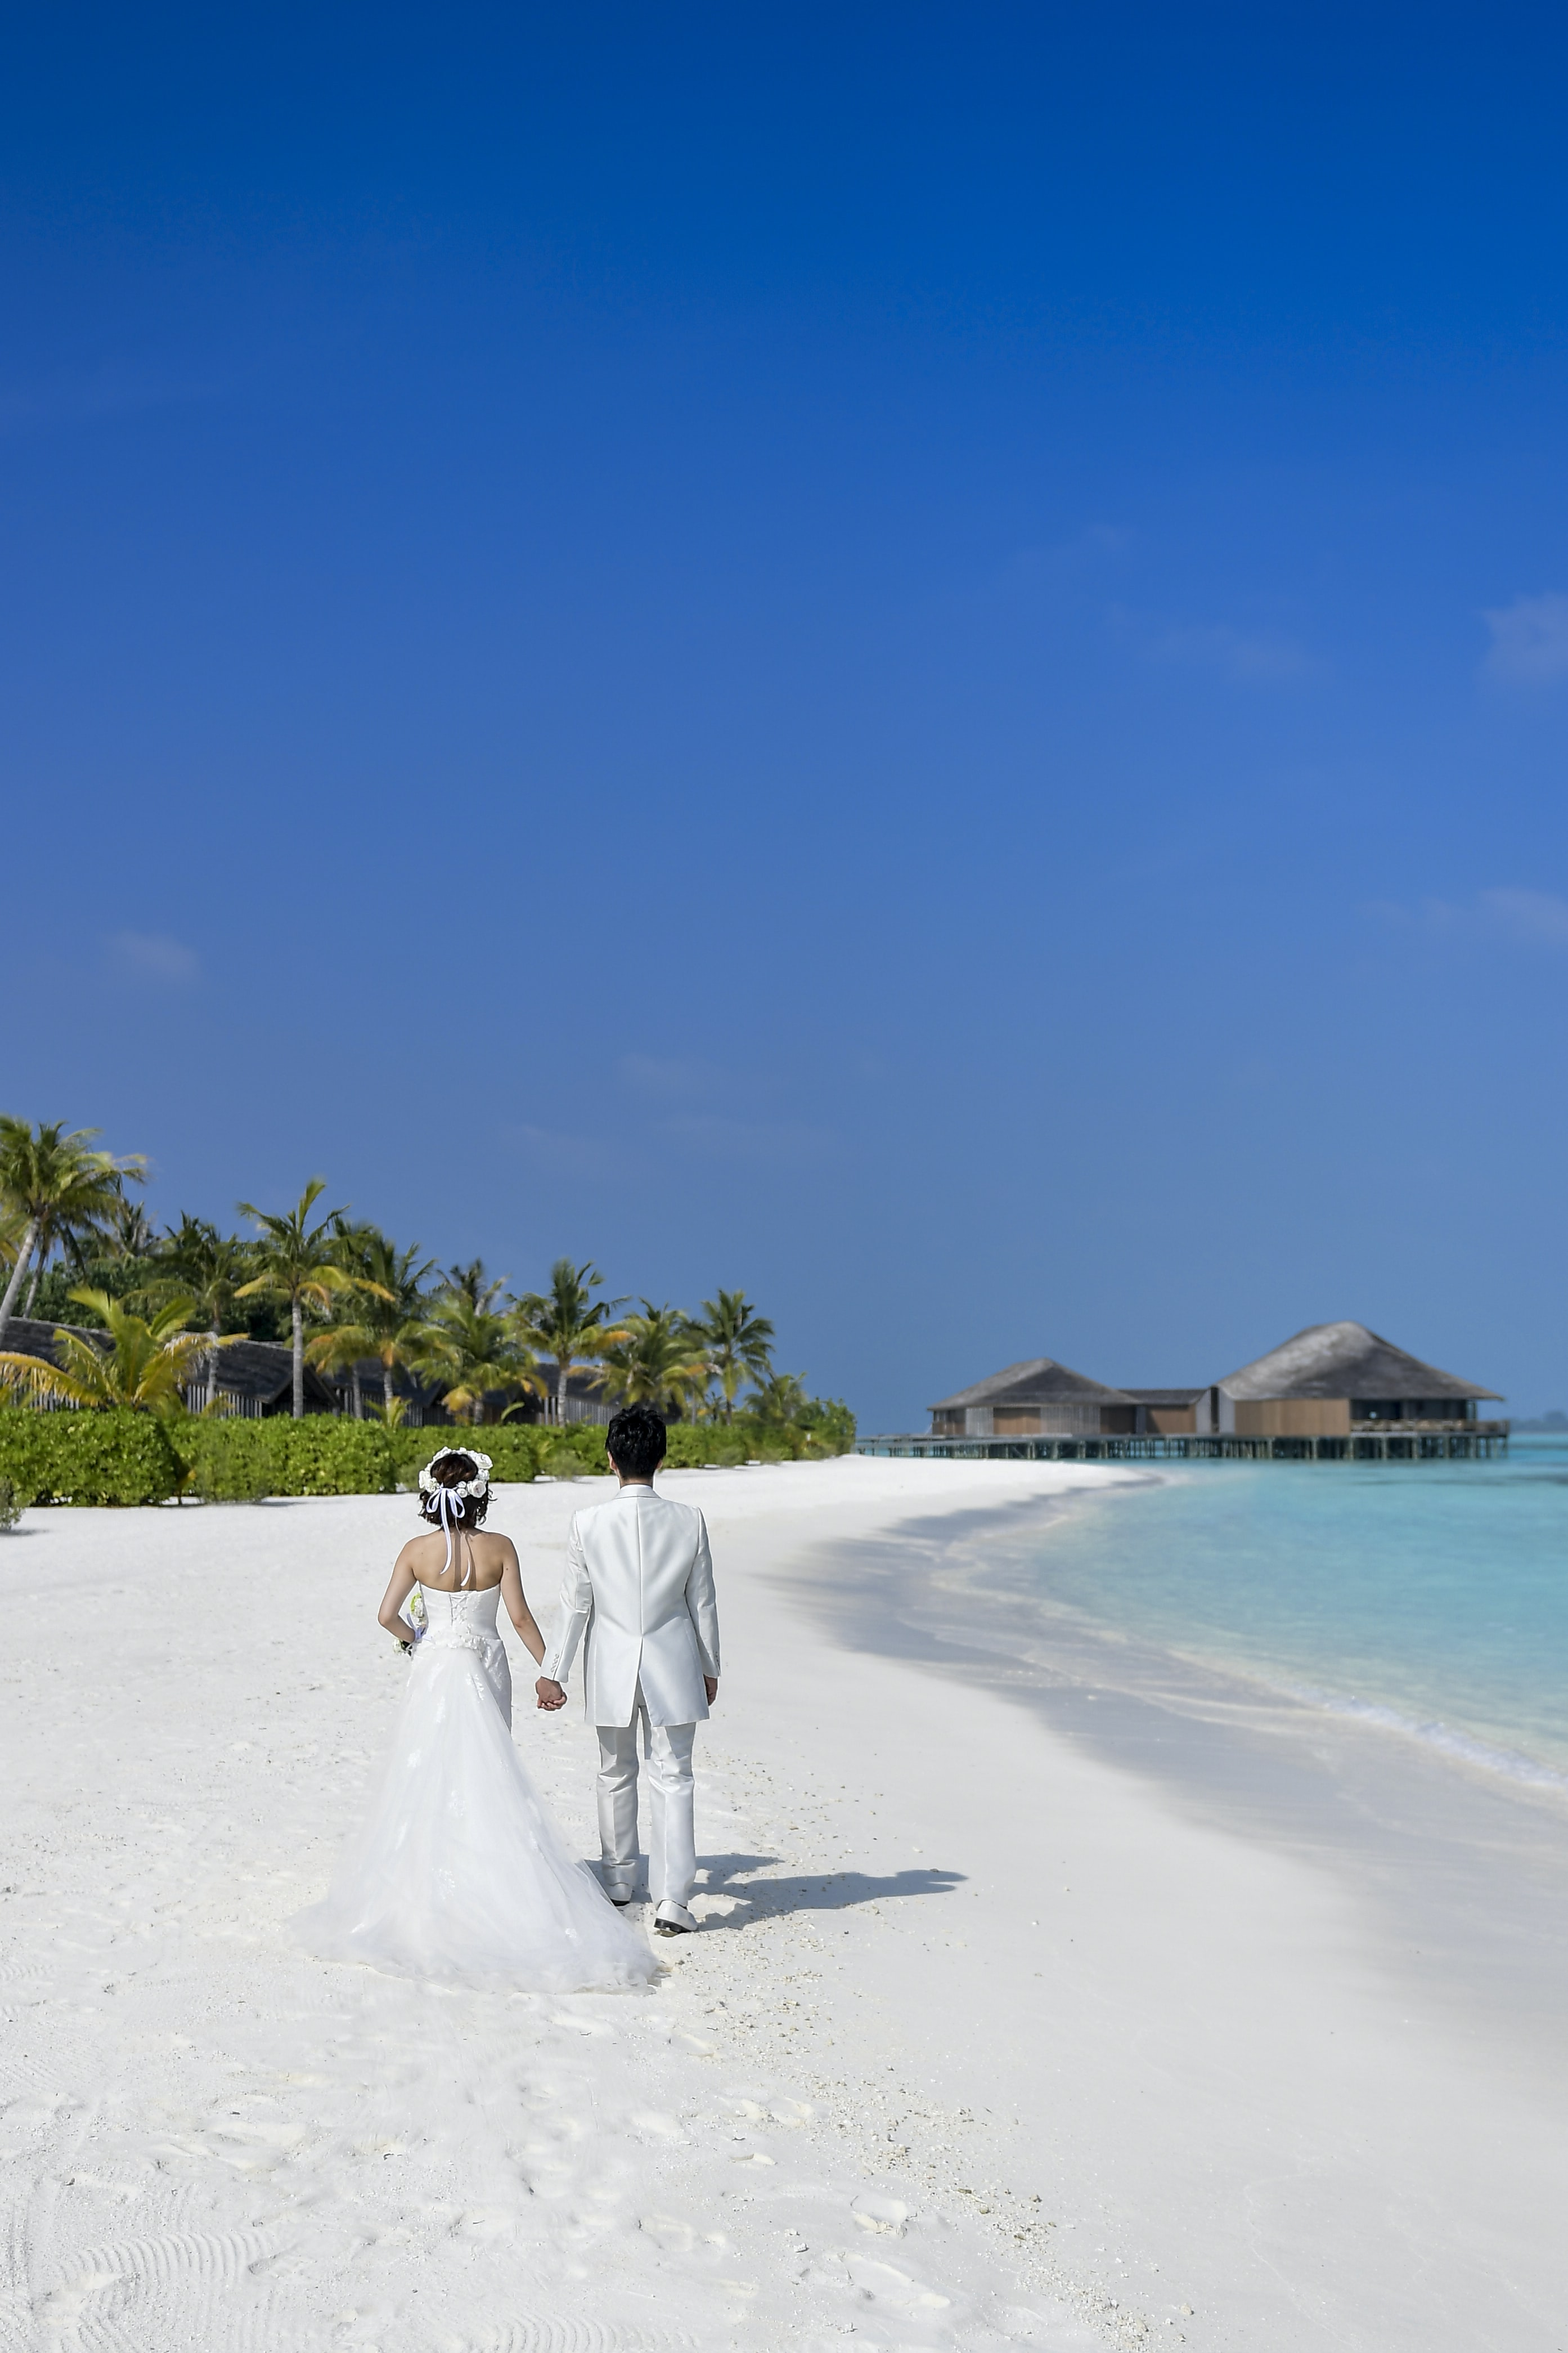 A newly married couple walks along a pristine beach in the Maldives